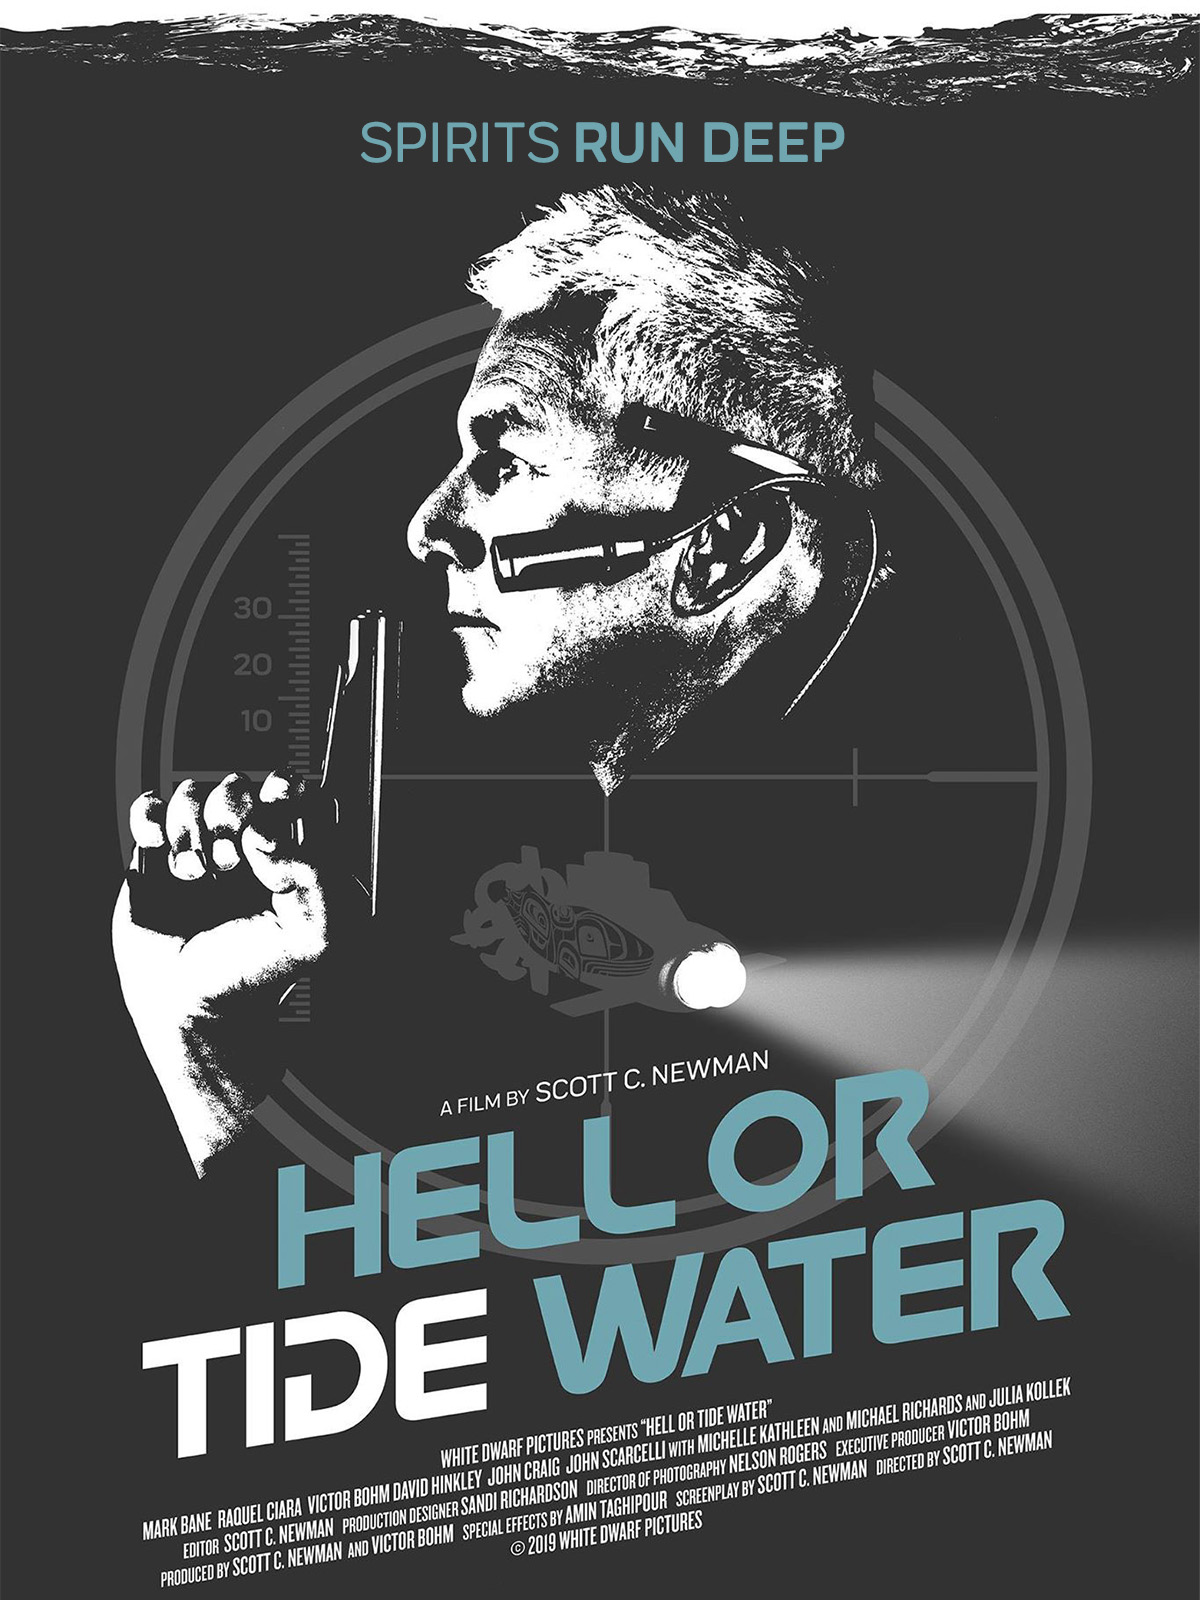 Hell or Tide Water